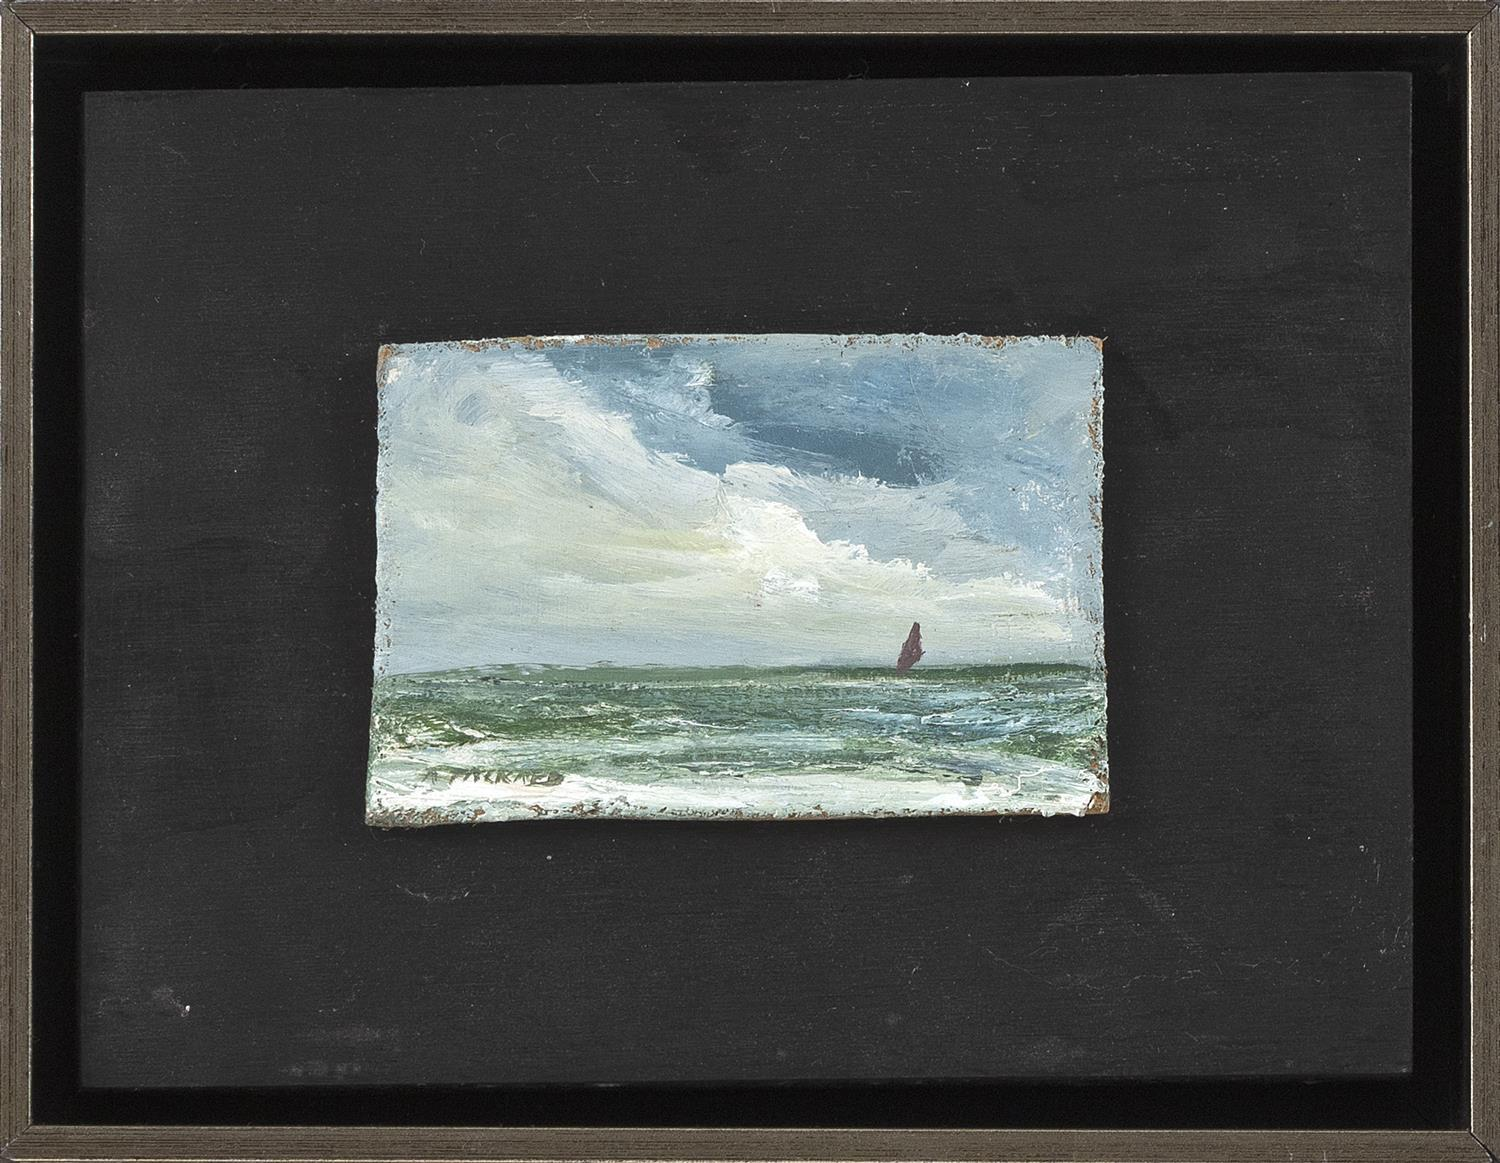 "ANNE PACKARD, Massachusetts/New Jersey, b. 1933, Brisk sail., Oil on board, 3"" x 4.25"". Framed 7"" x 9""."